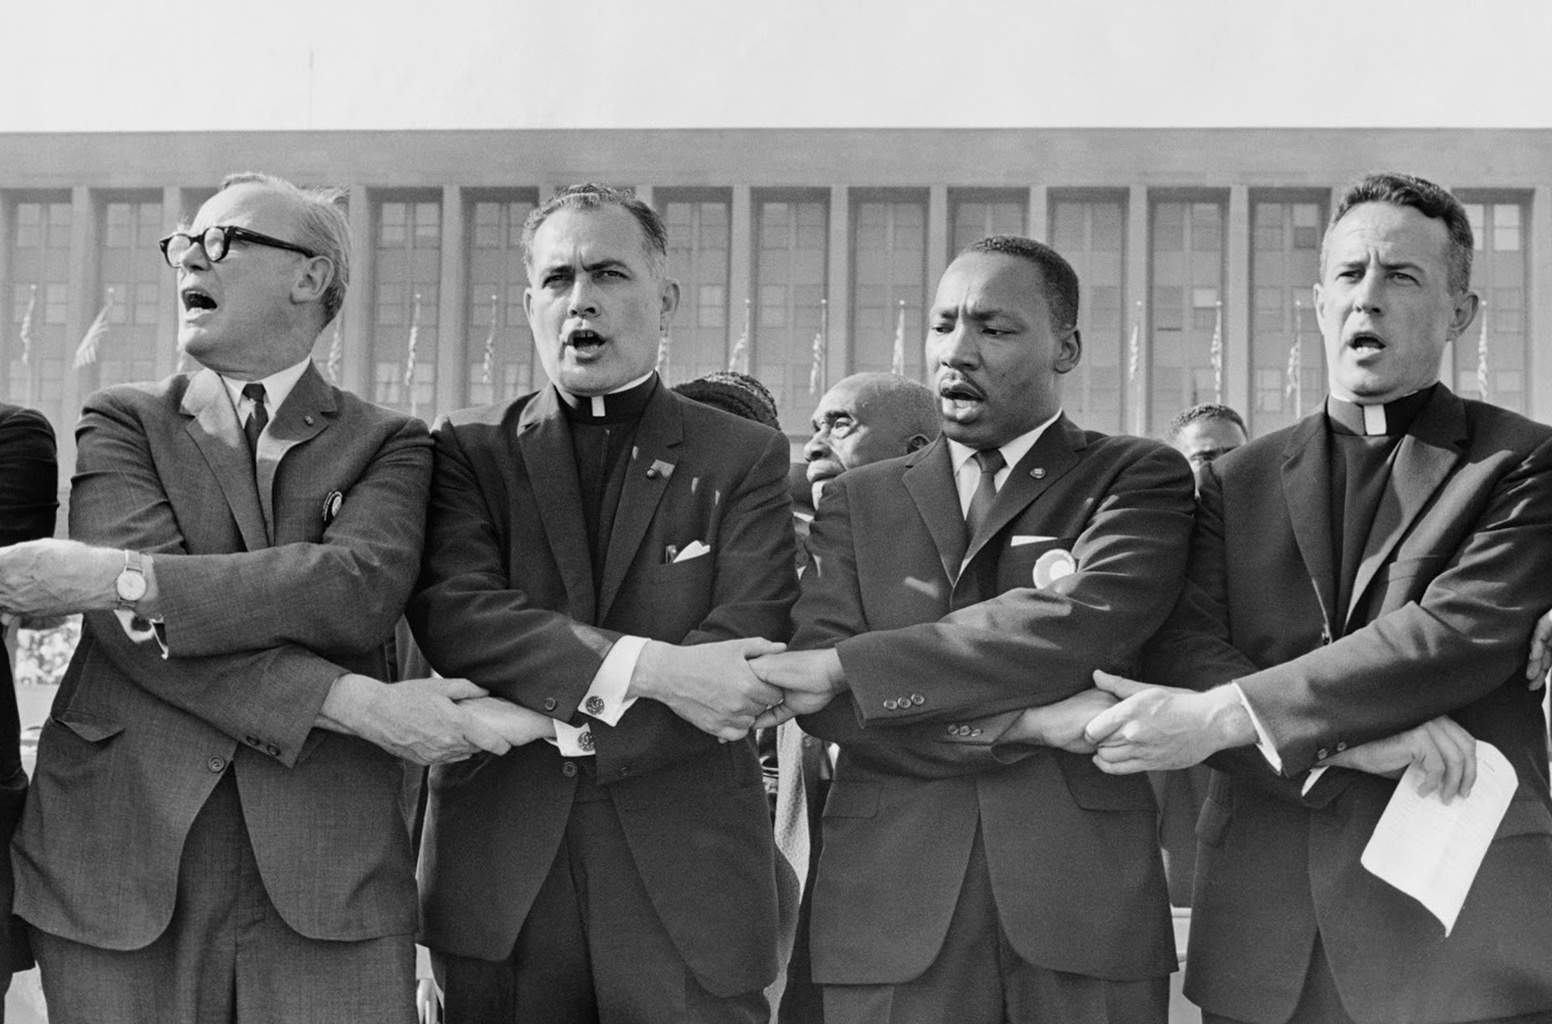 Homilist For Upcoming Mlk Mass Discusses Civil Rights